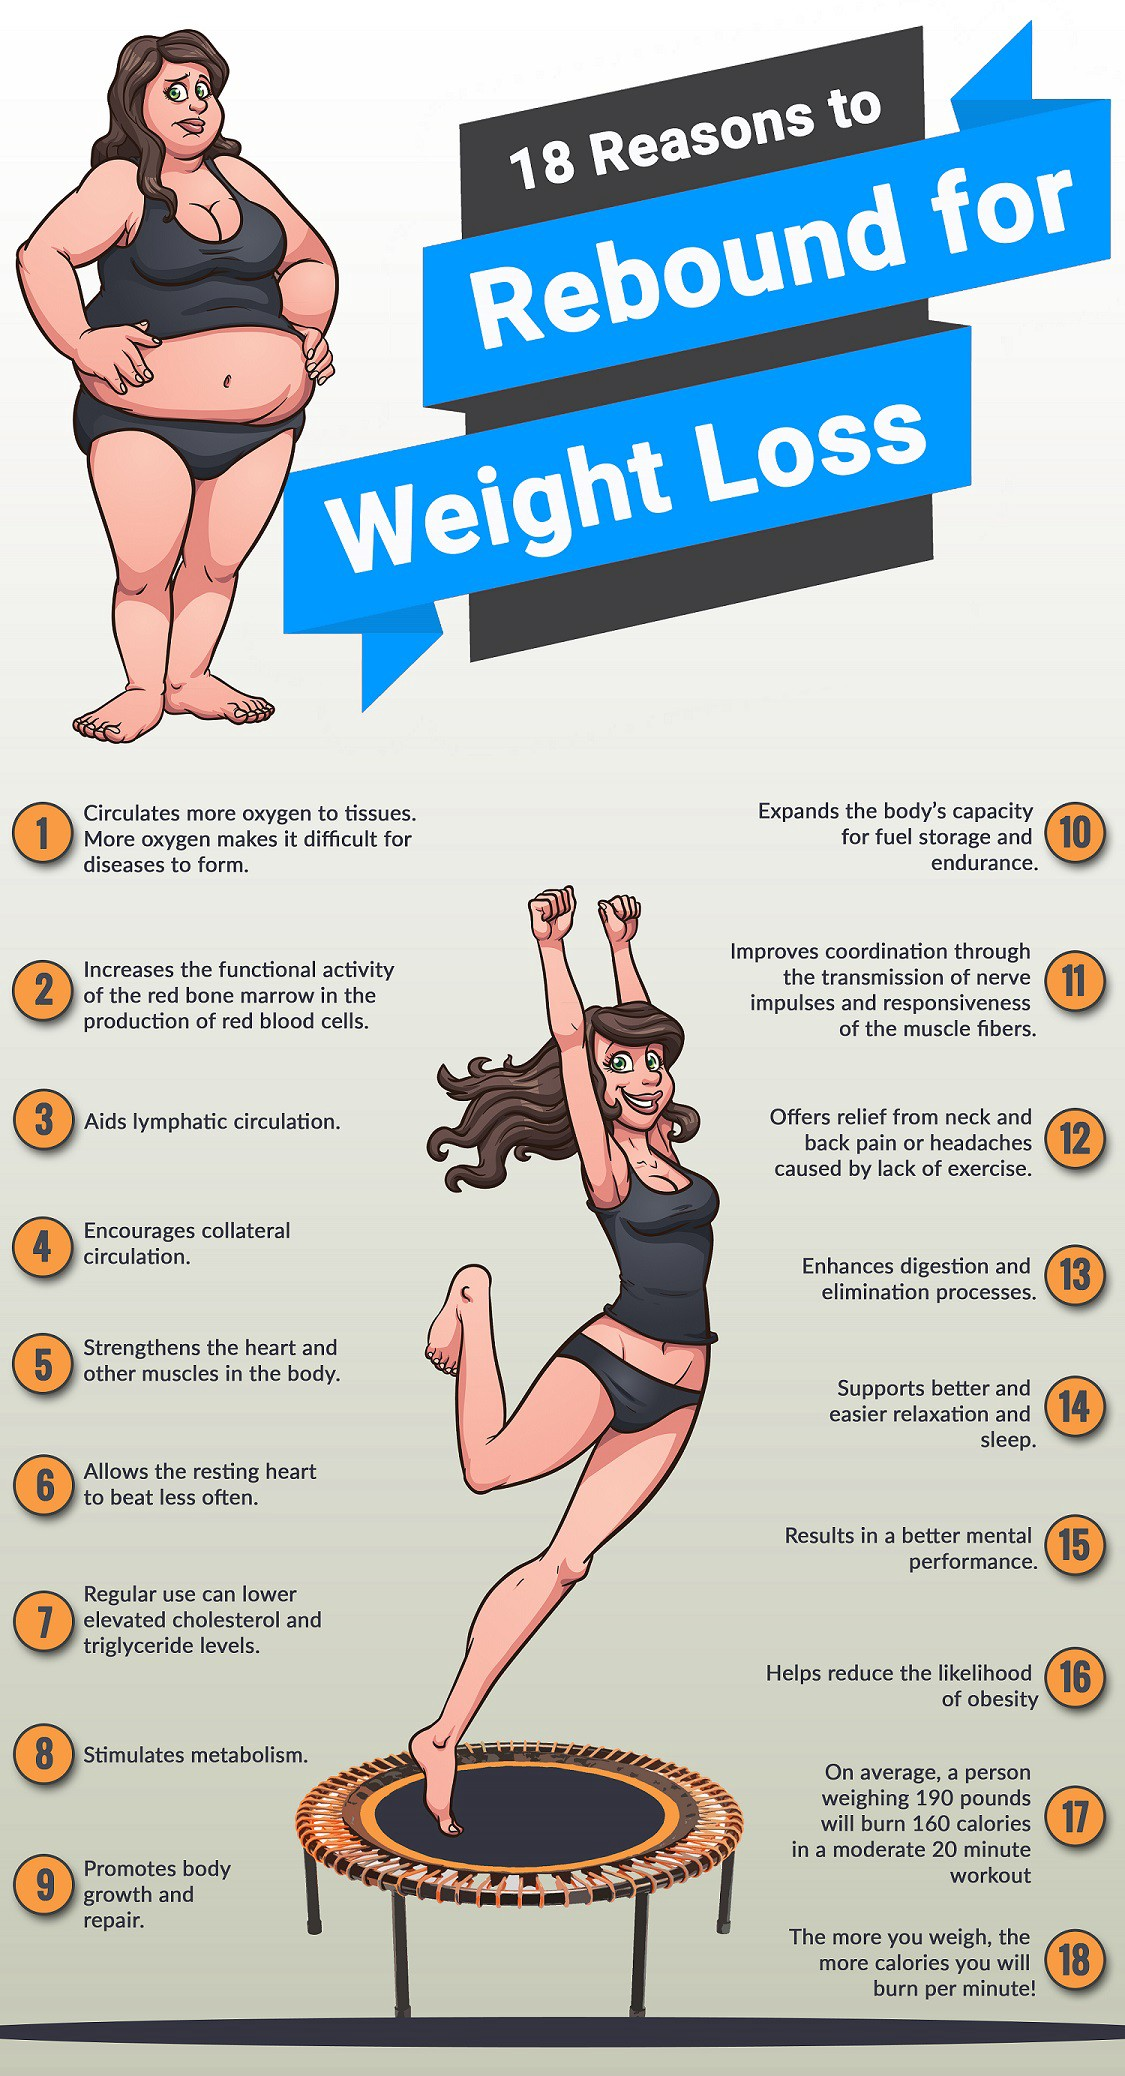 18 Reasons to Rebound for Weight Loss - Rebounder Zone - Medium